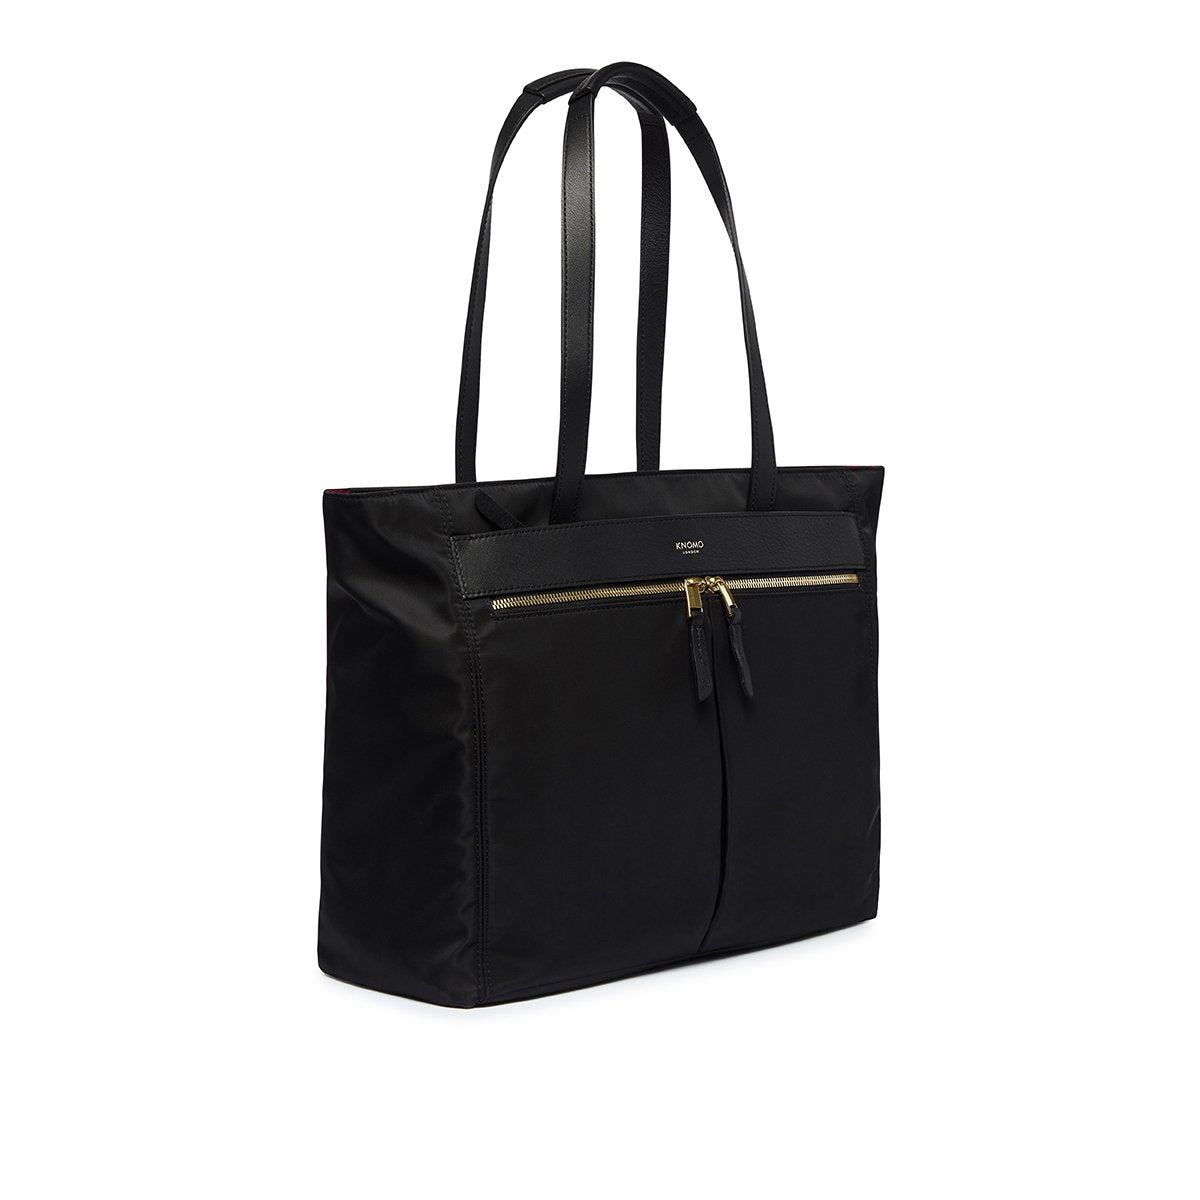 "KNOMO Grosvenor Place Tote Three Quarter View 14"" -  Black 